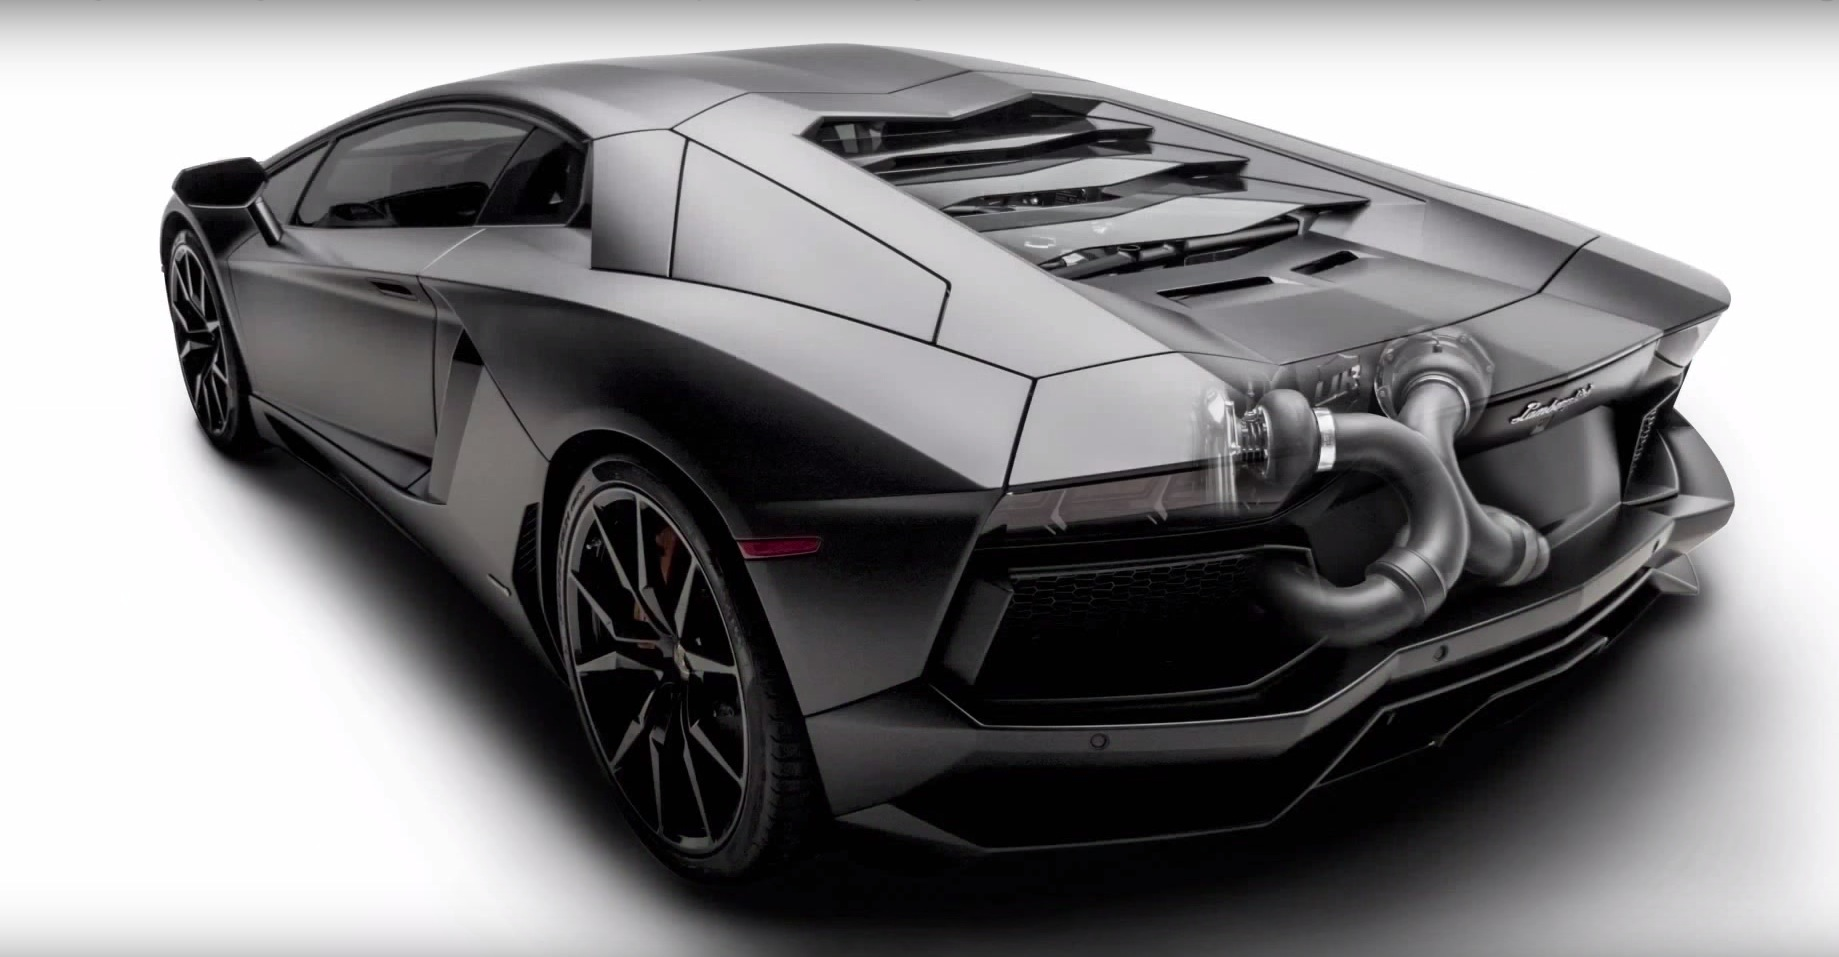 1 500 Hp Twin Turbo Lamborghini Aventador Makes Racing Debut With